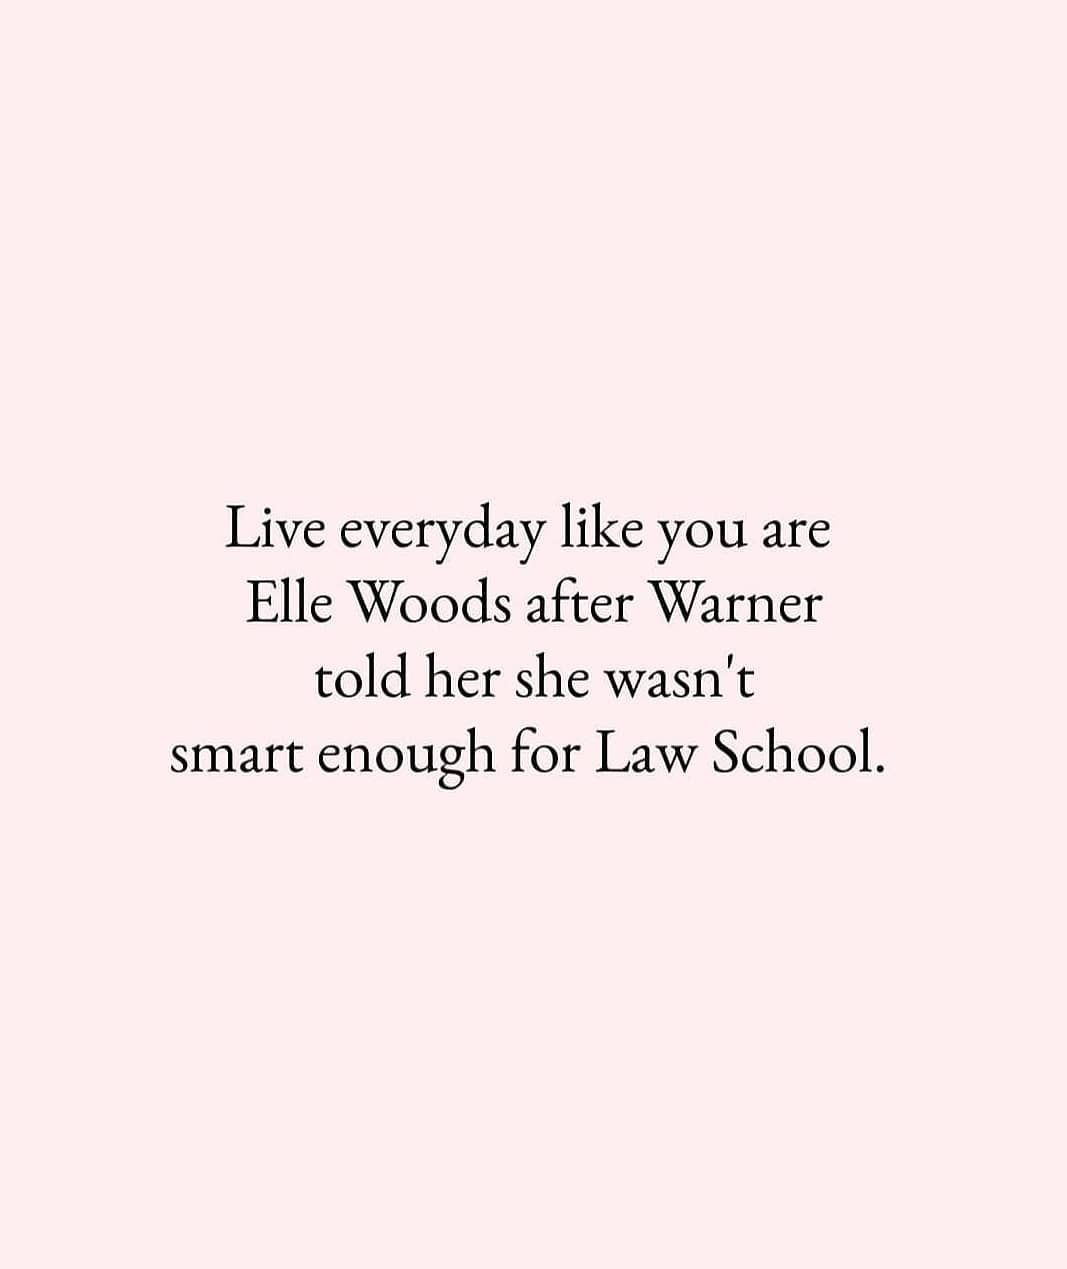 Live everyday like you are Elle Woods after Warner told her ...